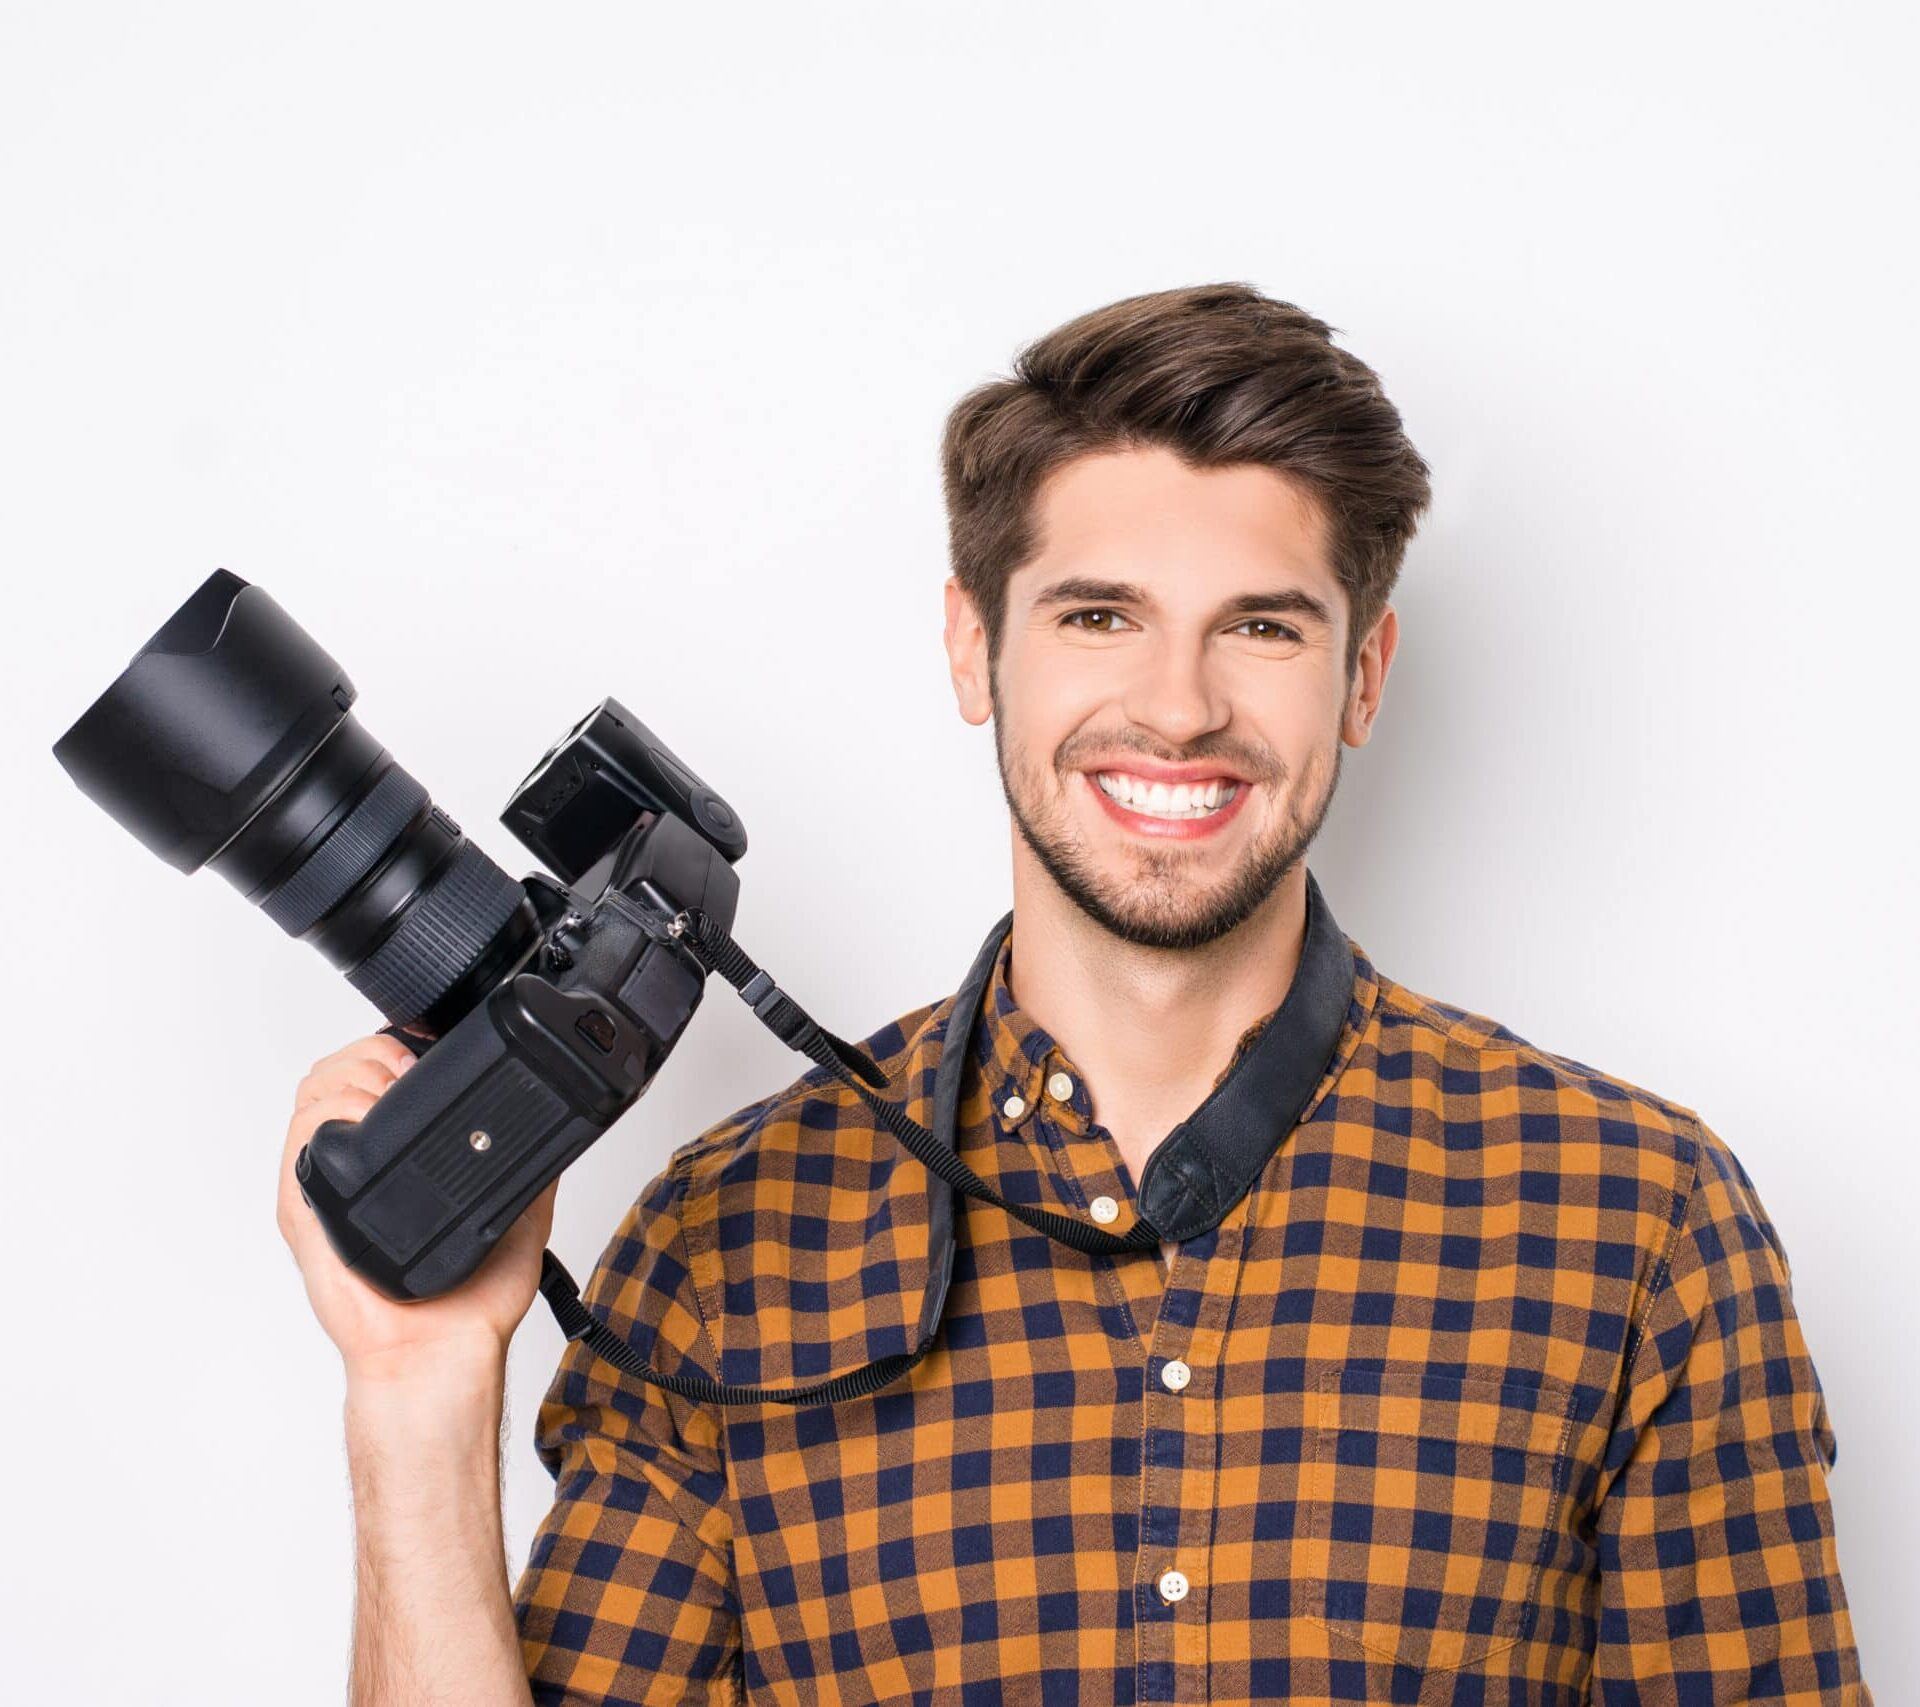 Chicago online dating photographer